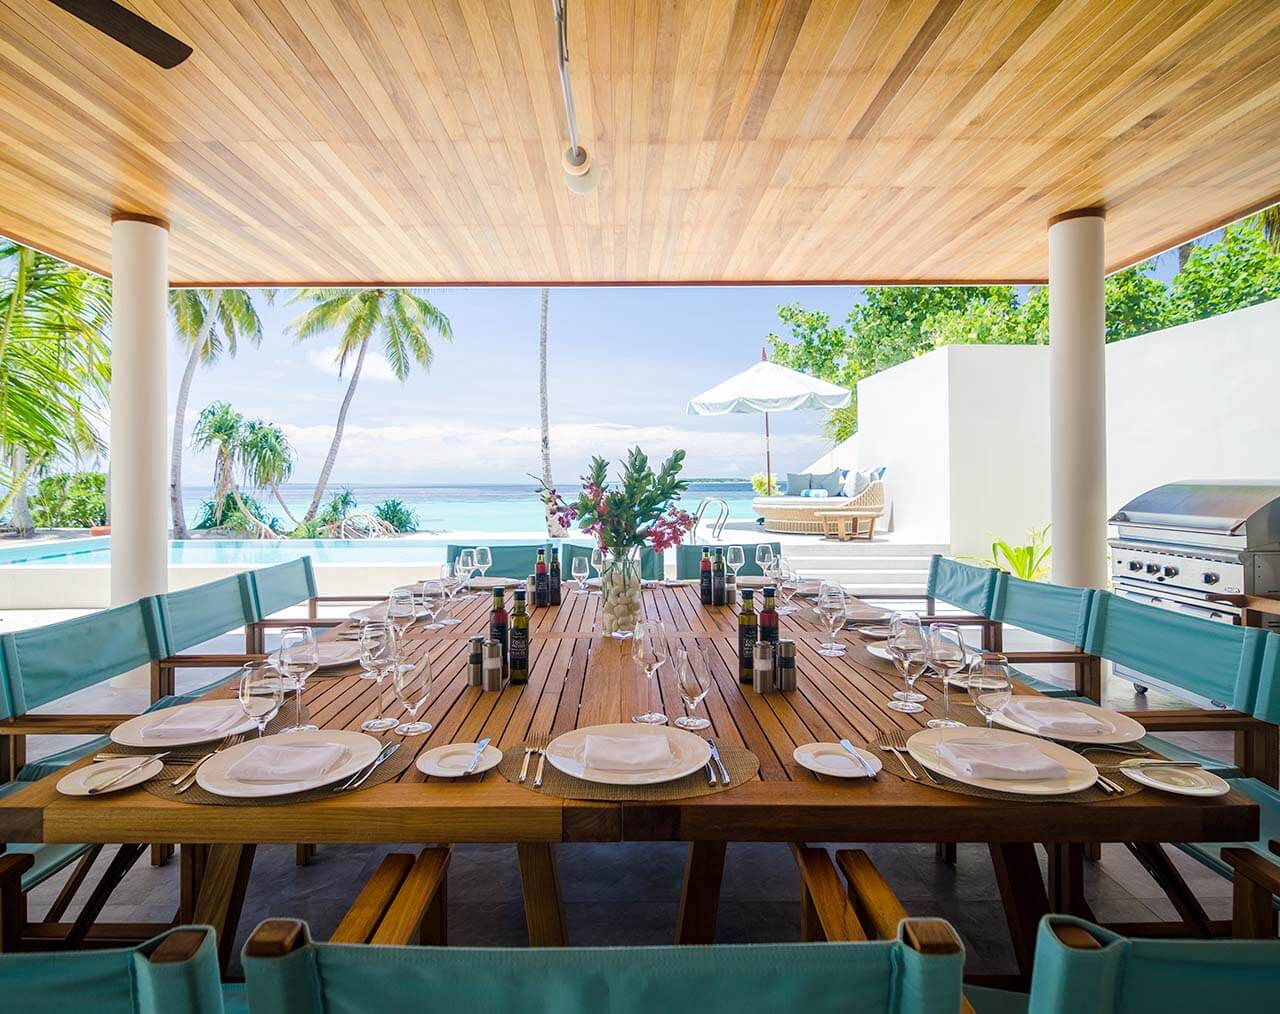 The Beach Residence's of Amilla Fushi are perfect for celebrations and gatherings with family or friends.